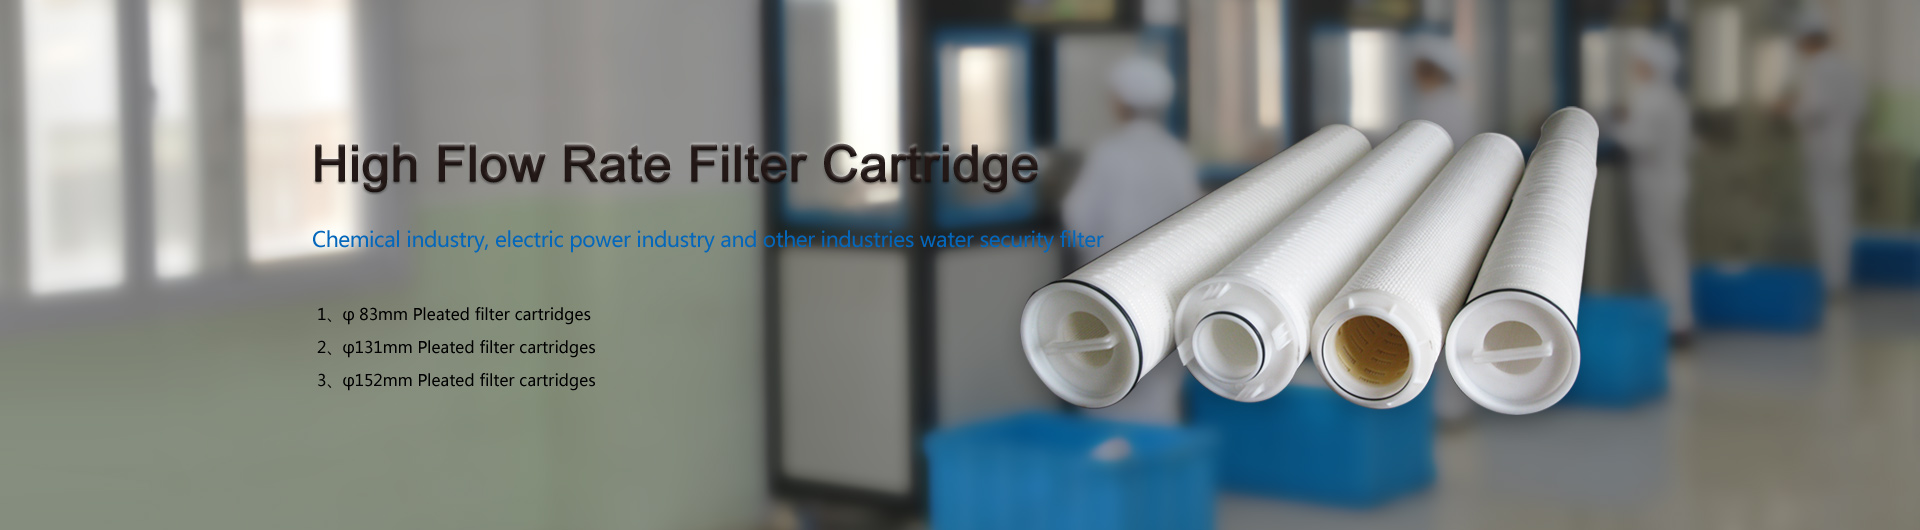 High Flow Rate Filter Cartridge